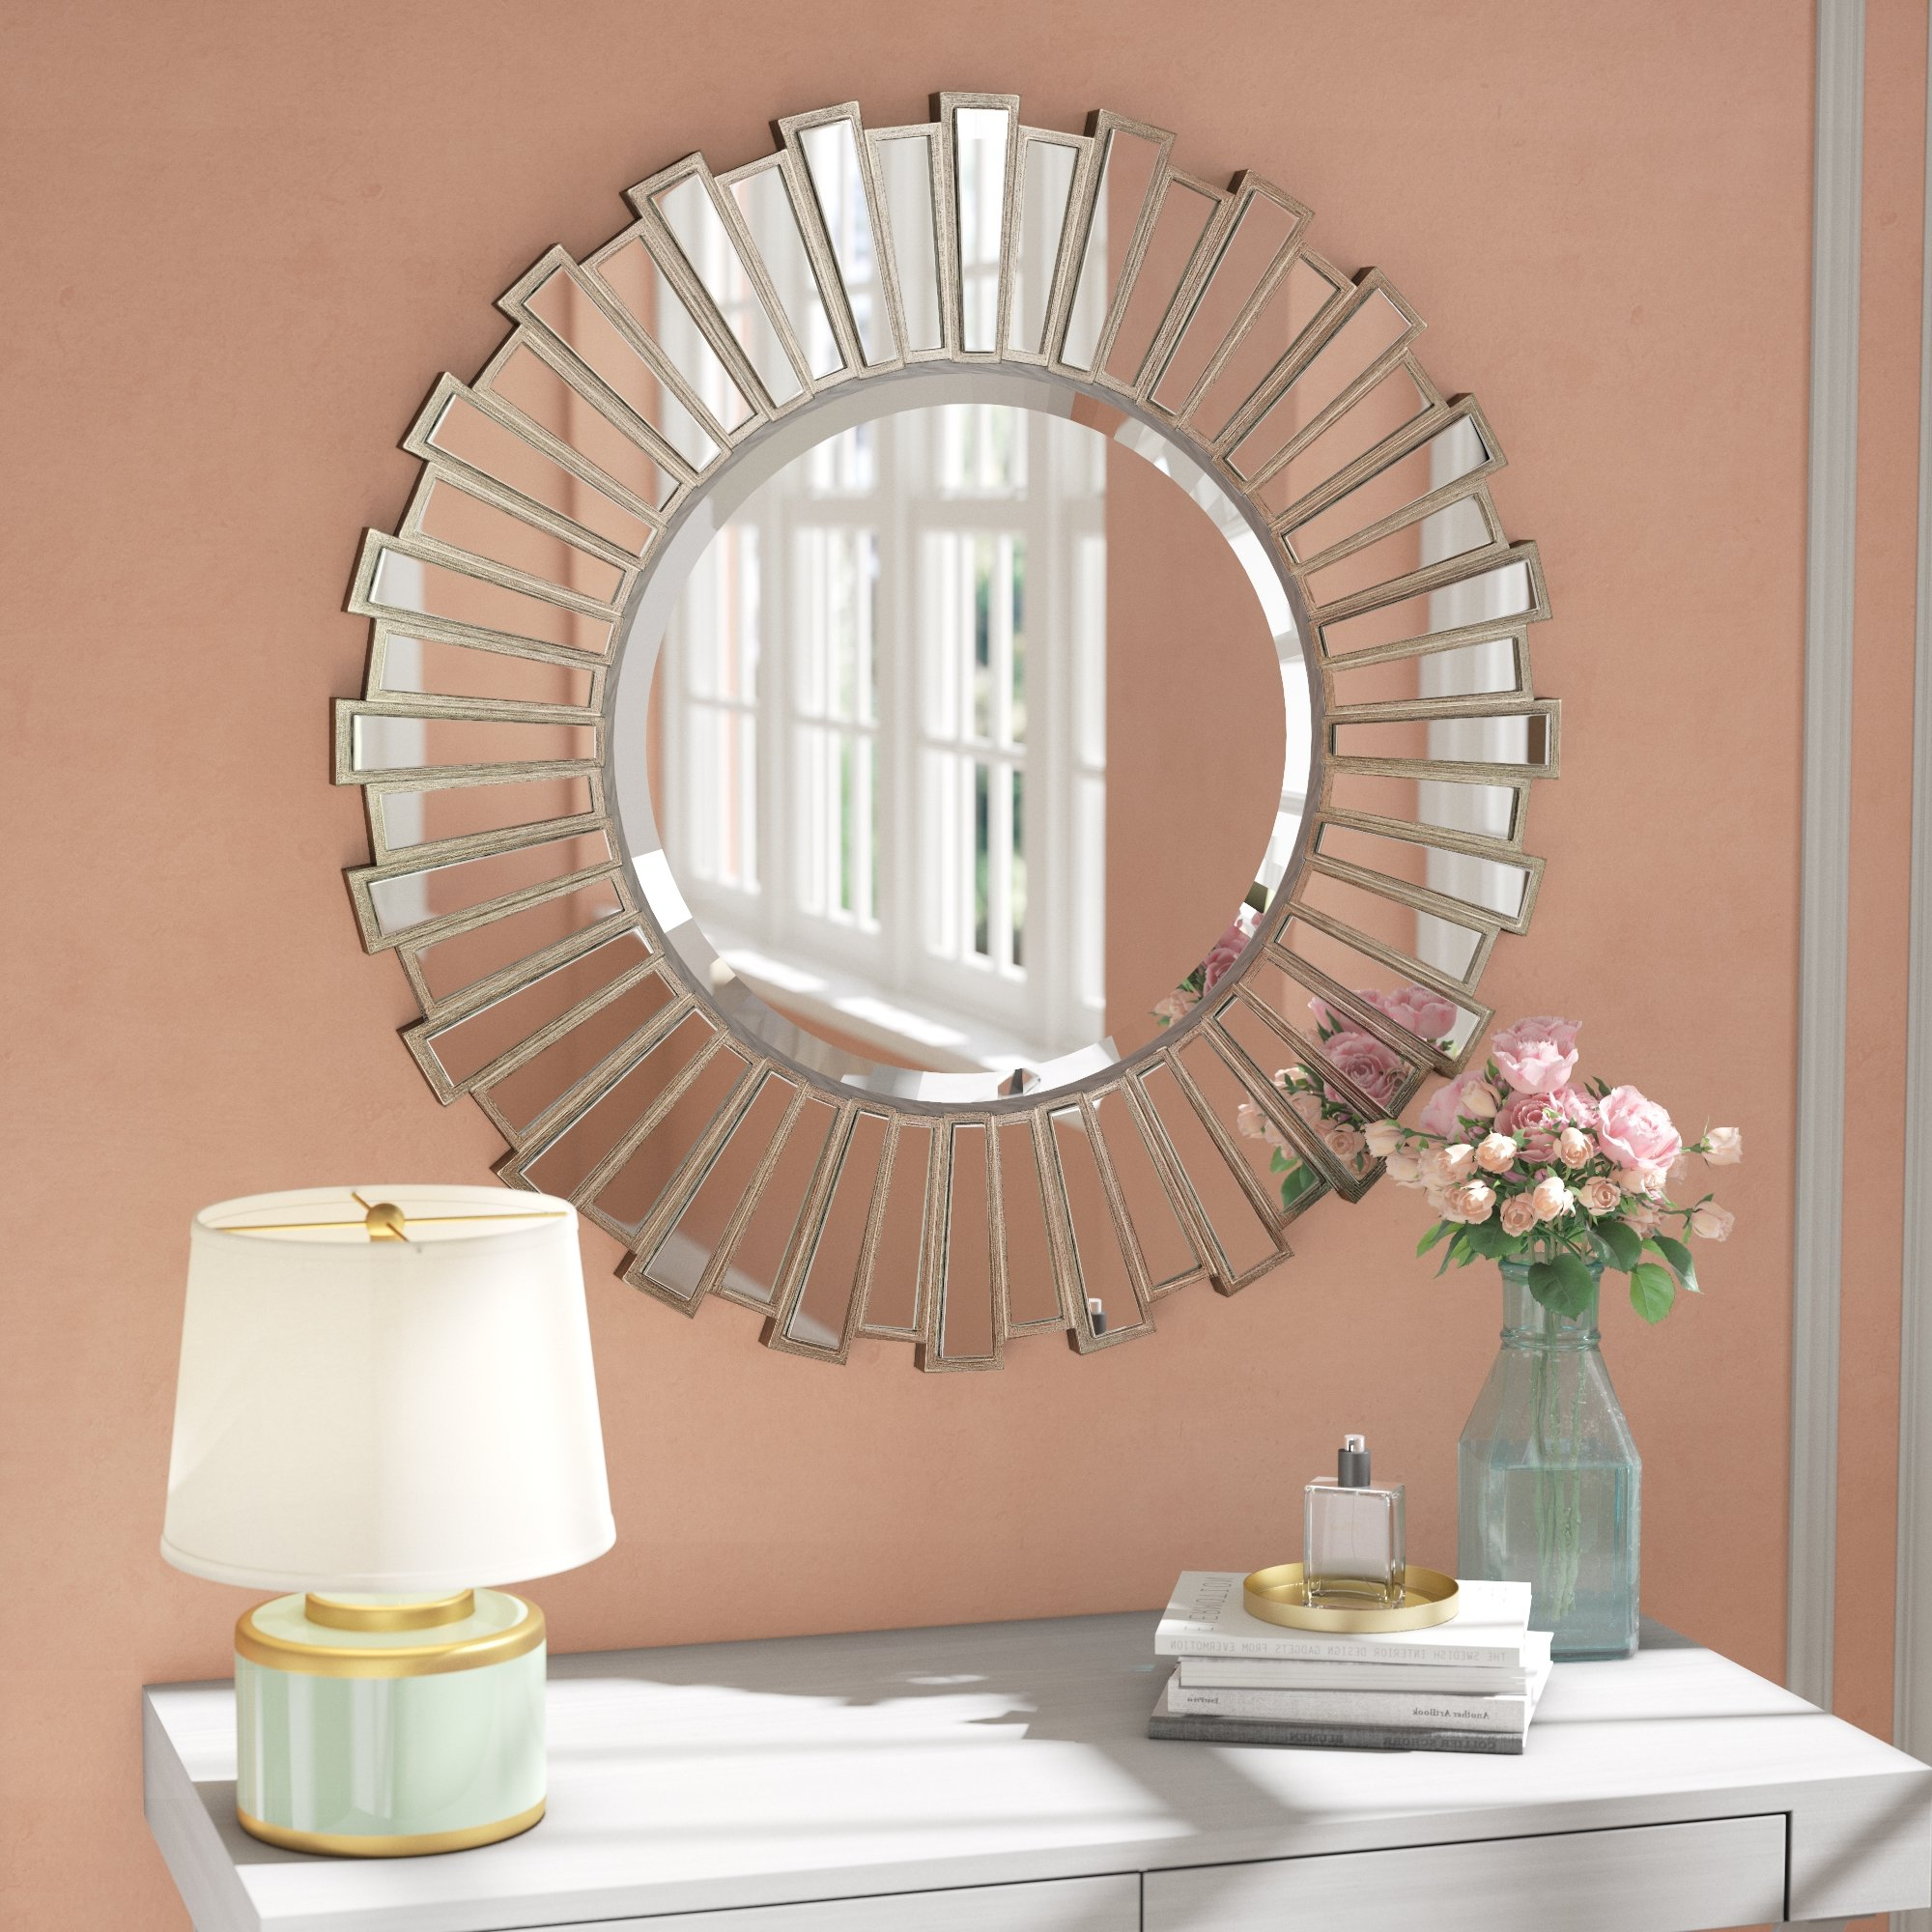 Bertrand Sunburst Resin Accent Wall Mirror Within Most Current Accent Wall Mirrors (View 6 of 20)